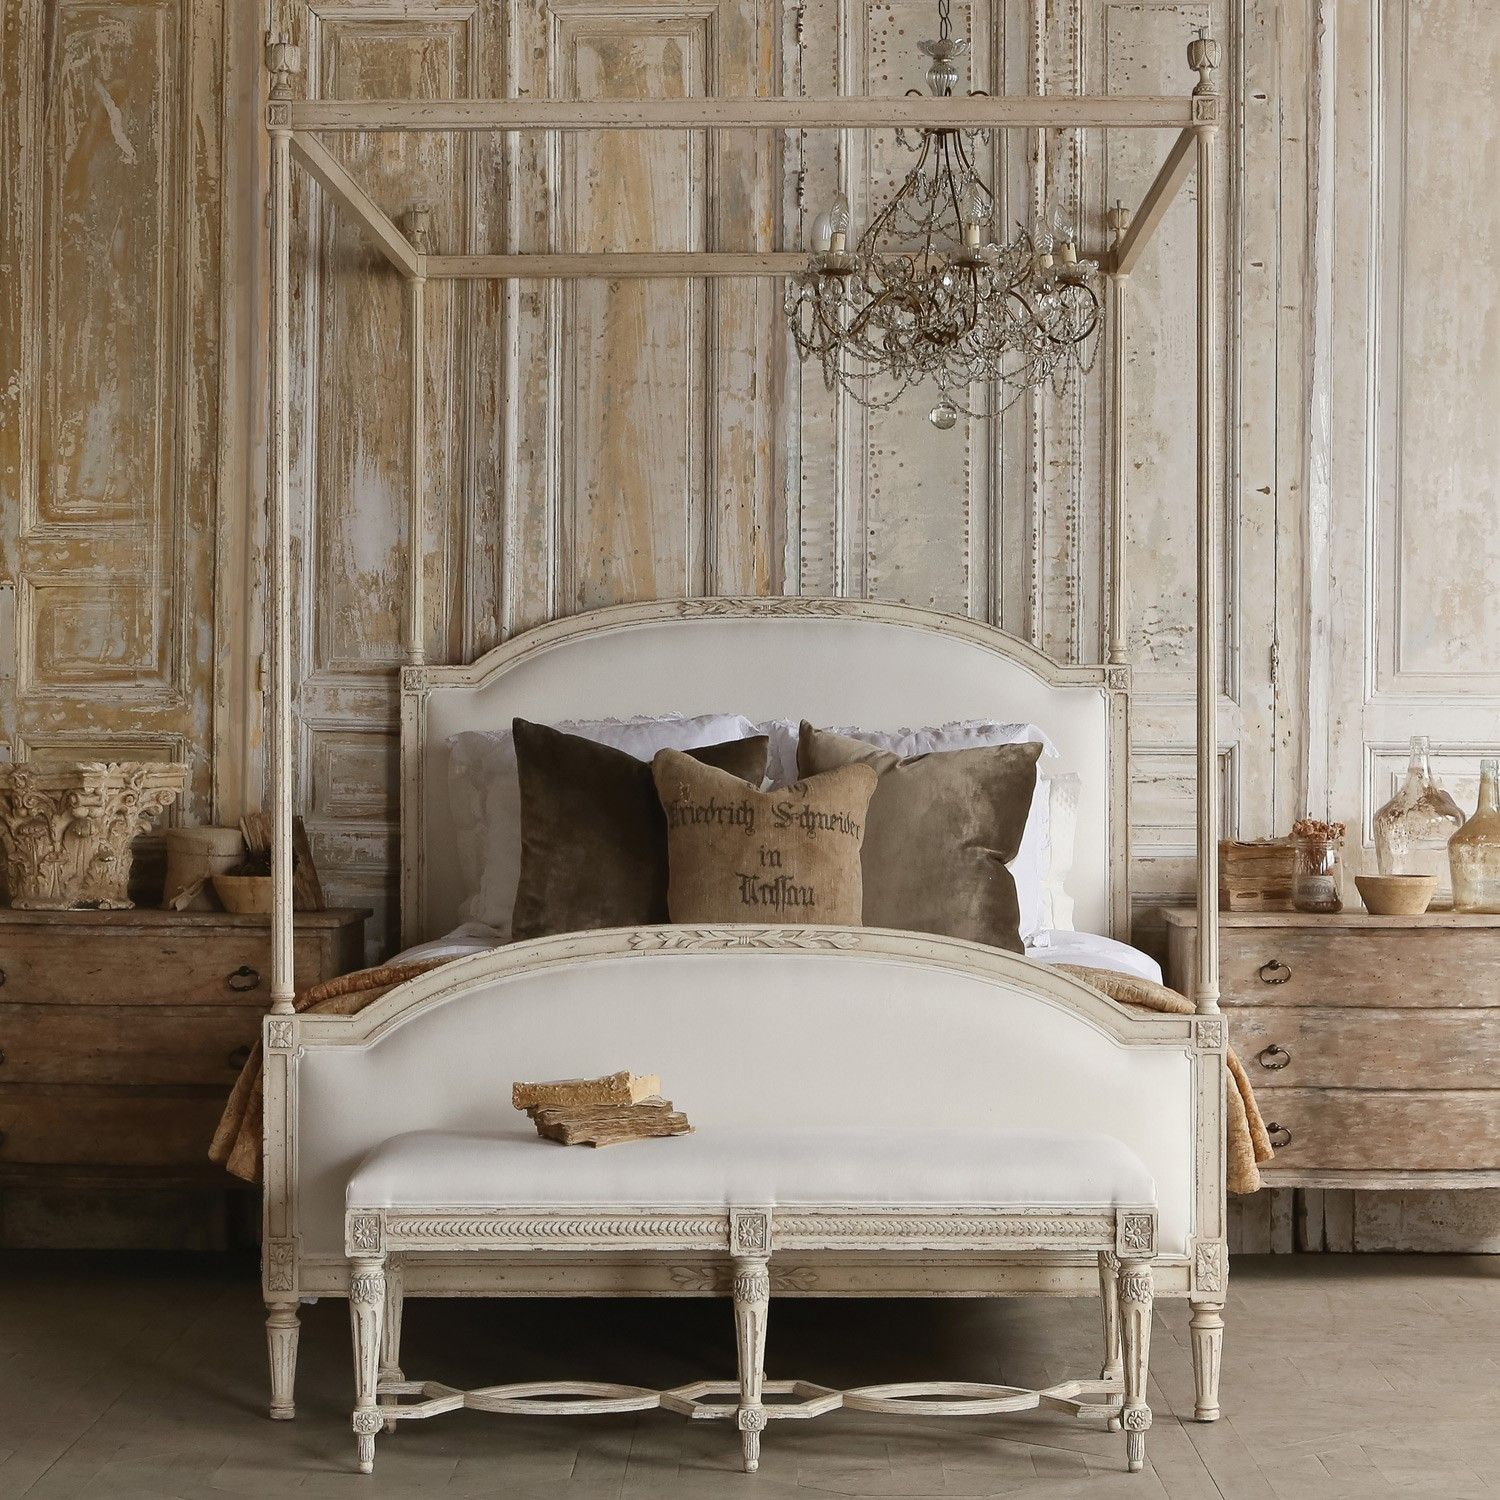 Shabby Chic Accent Wall